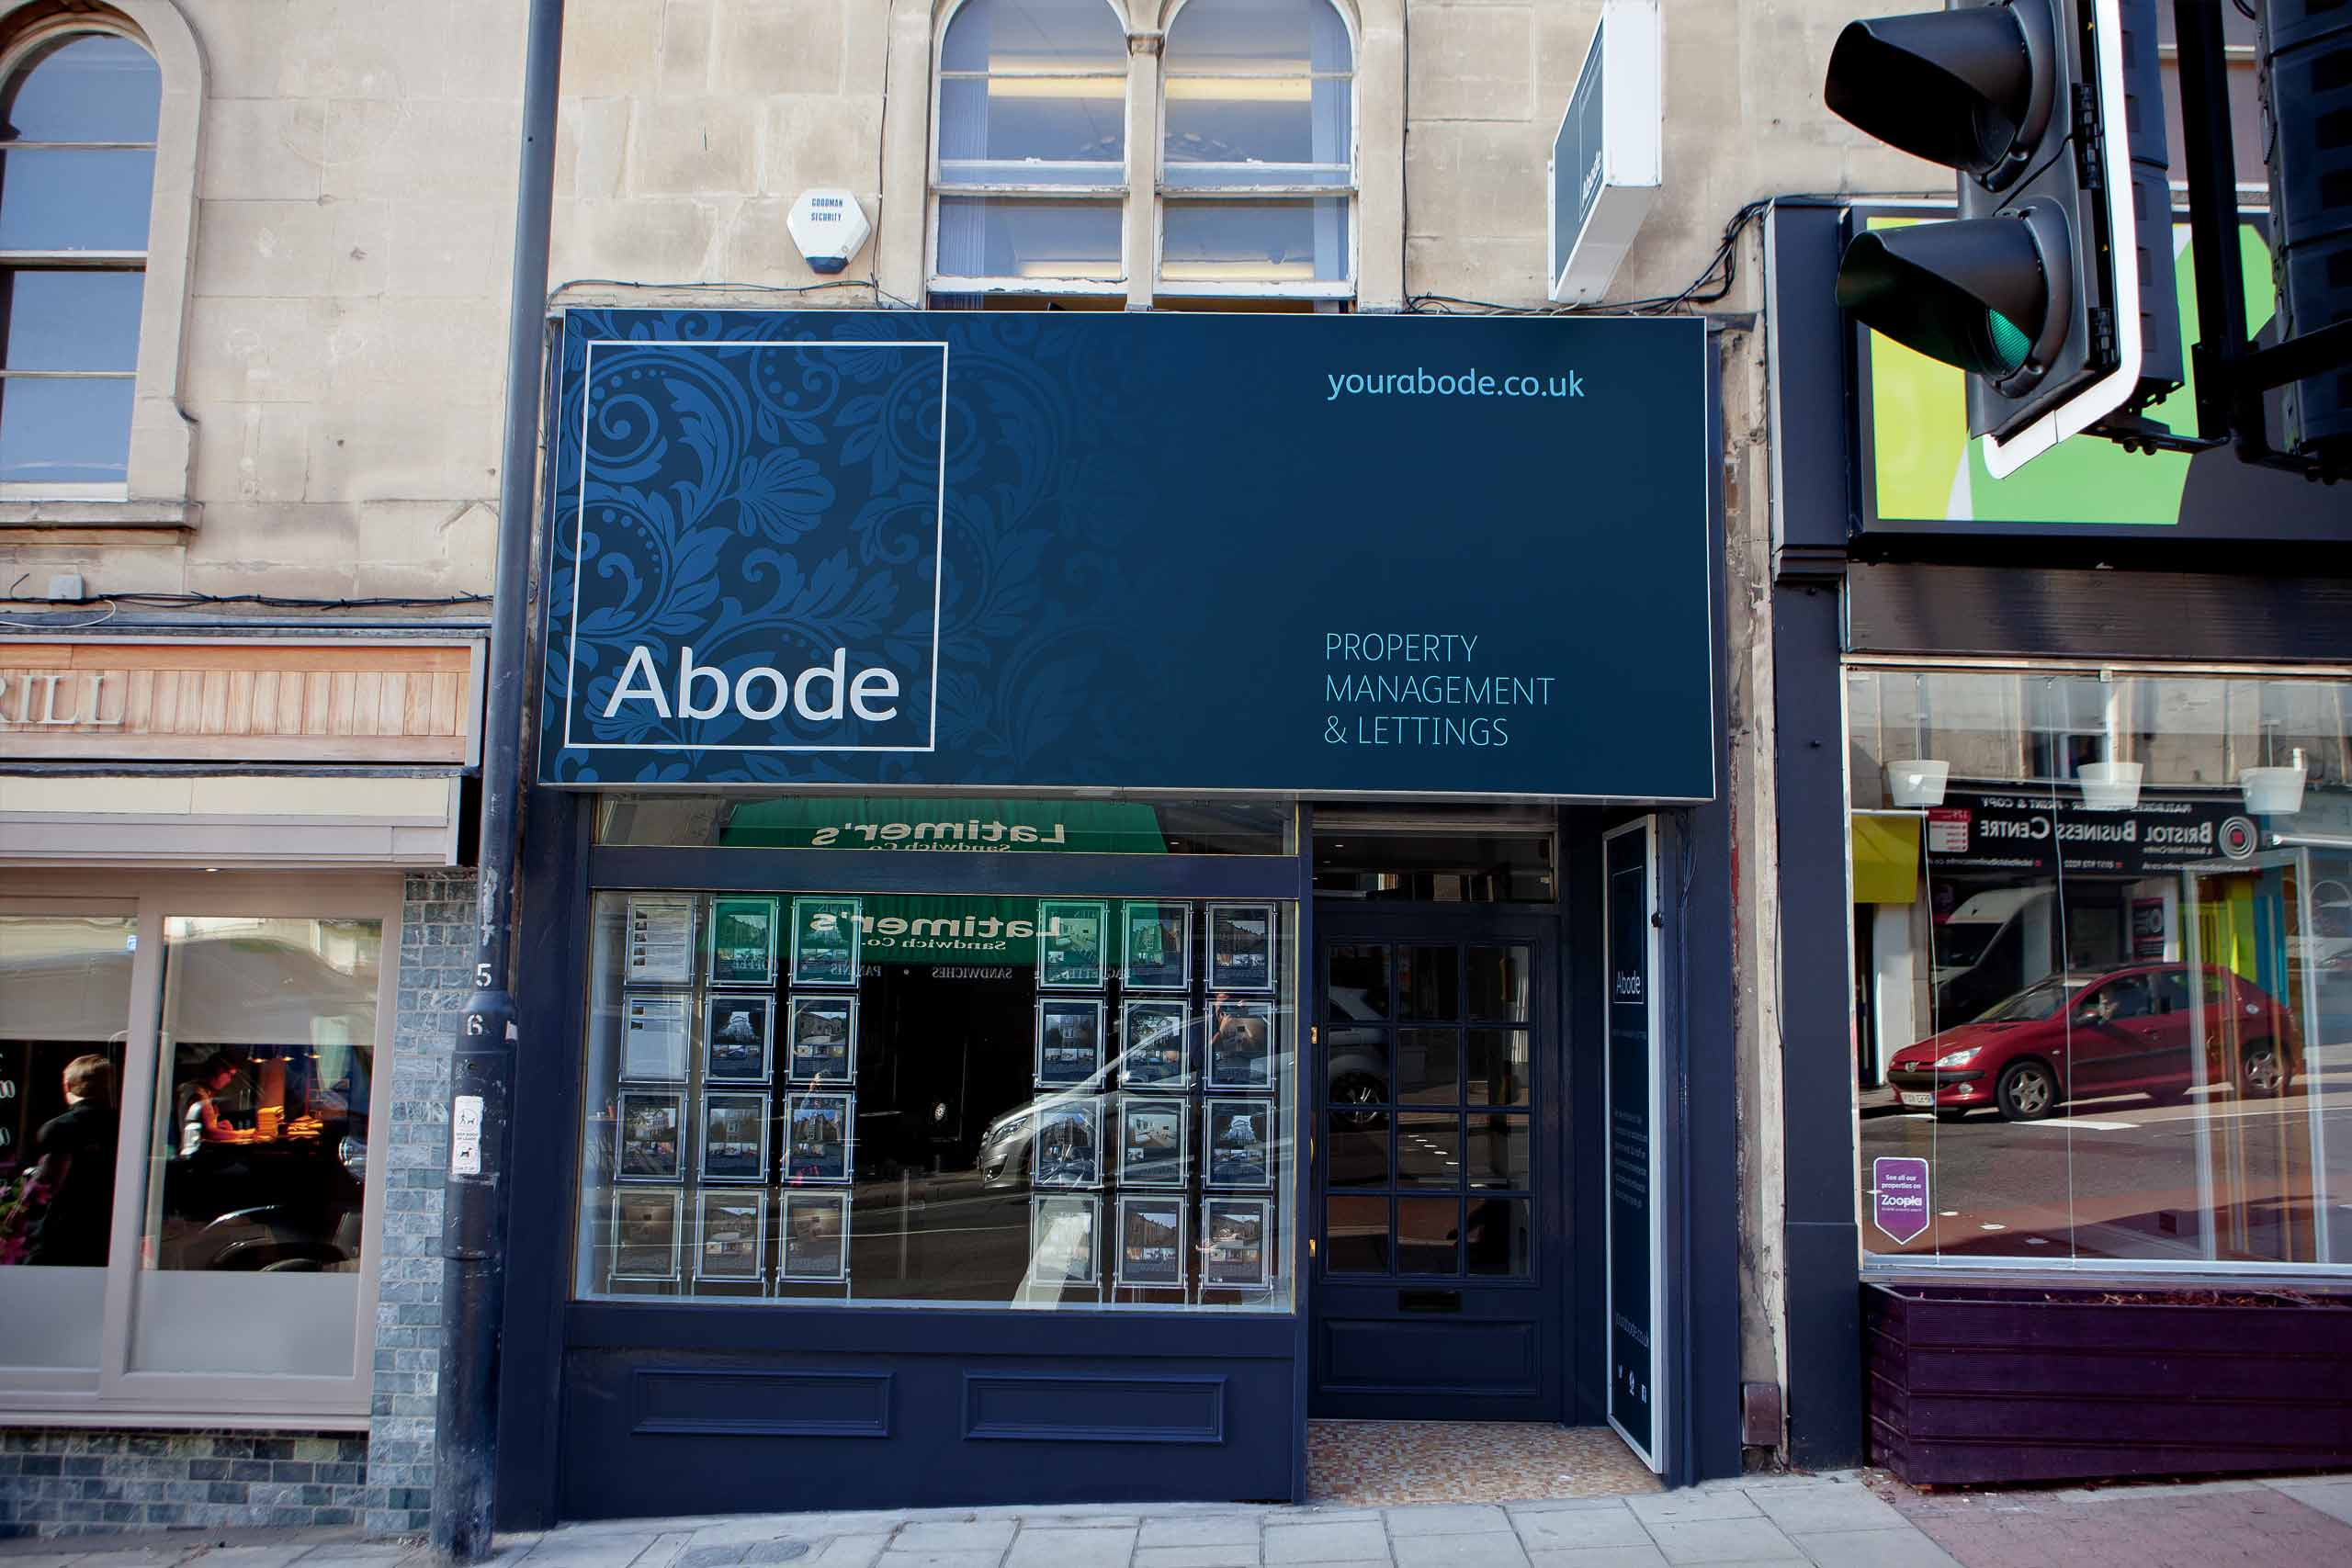 Abode office exterior signage